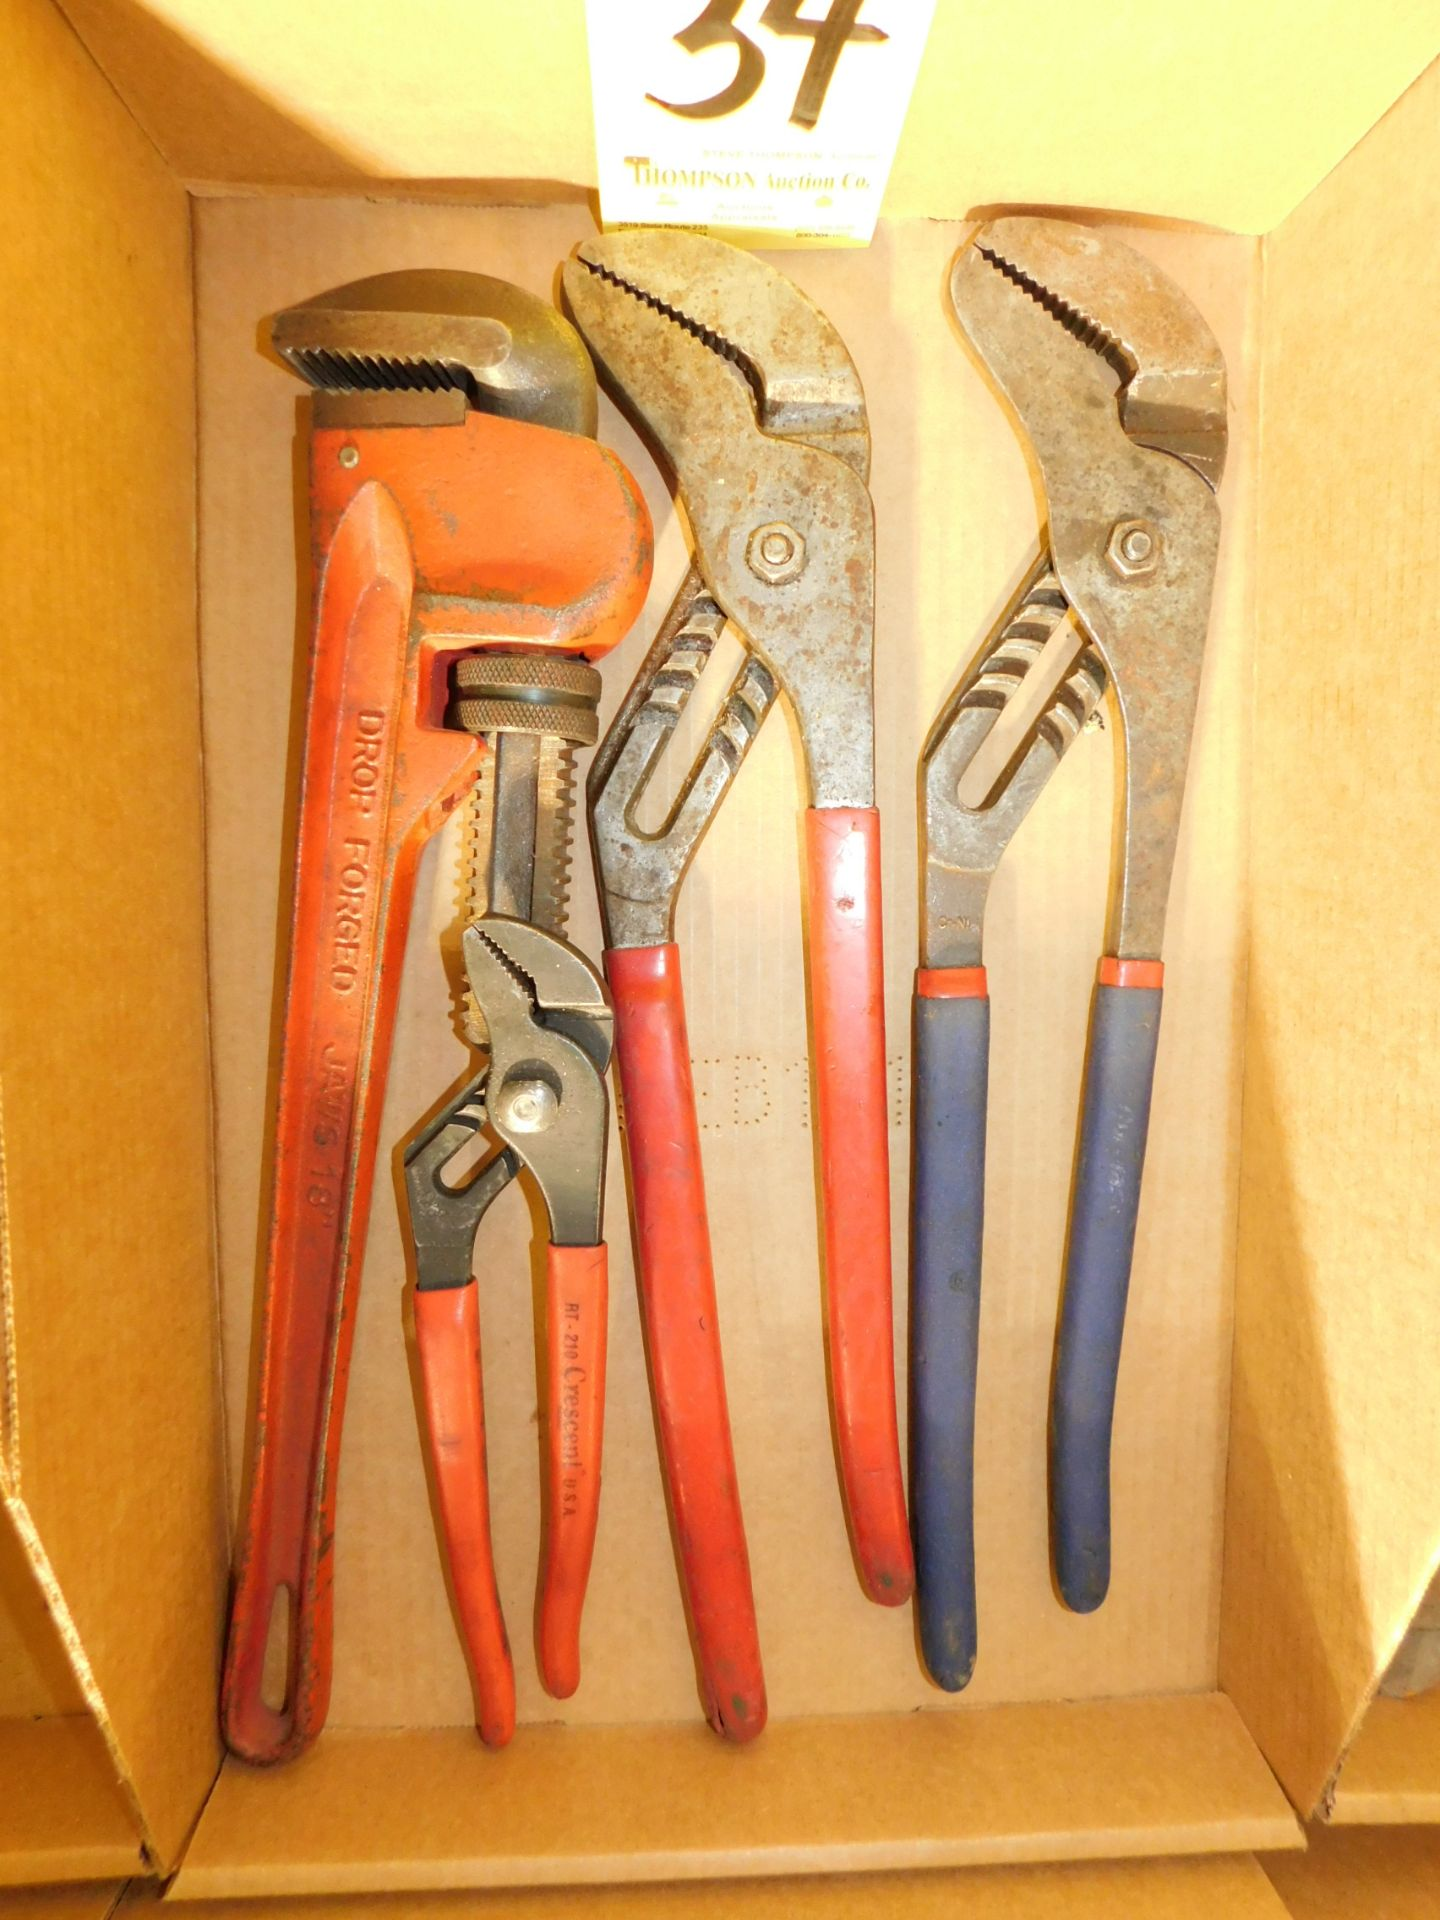 Lot 34 - Channel Locks and Pipe Wrench, Lot Location 3204 Olympia Dr. A, Lafayette, IN 47909